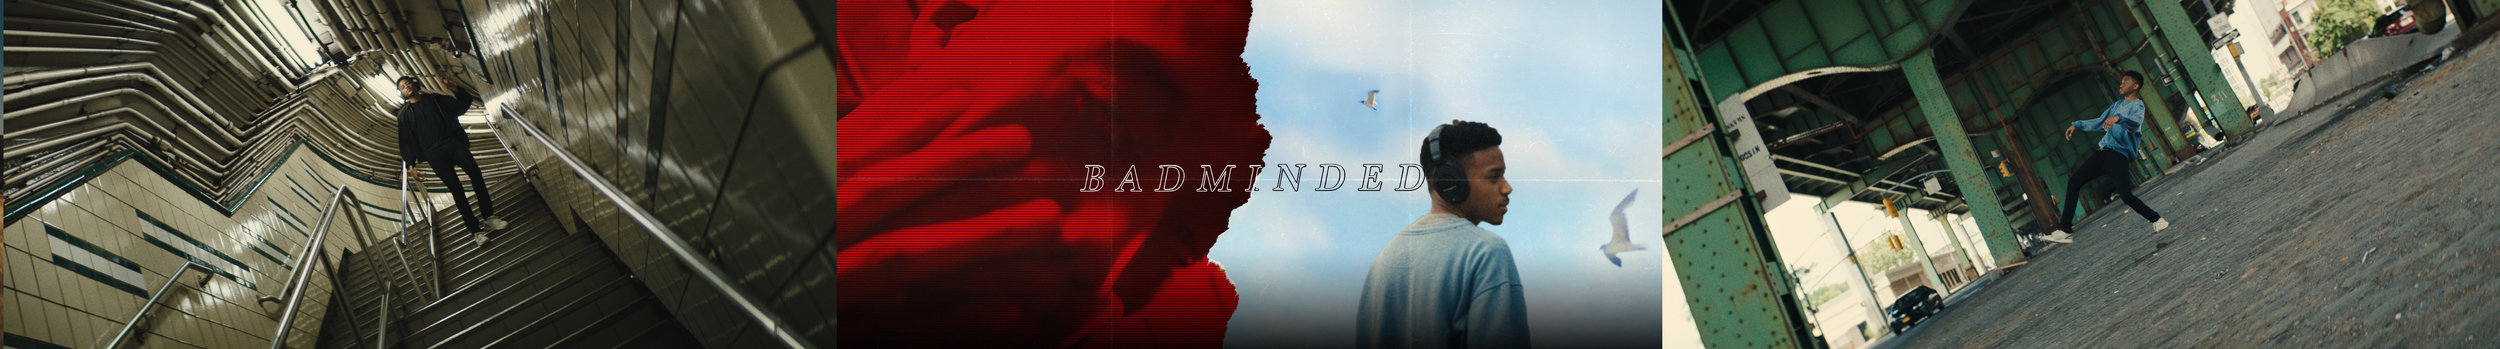 BADMINDED - Music Documentary